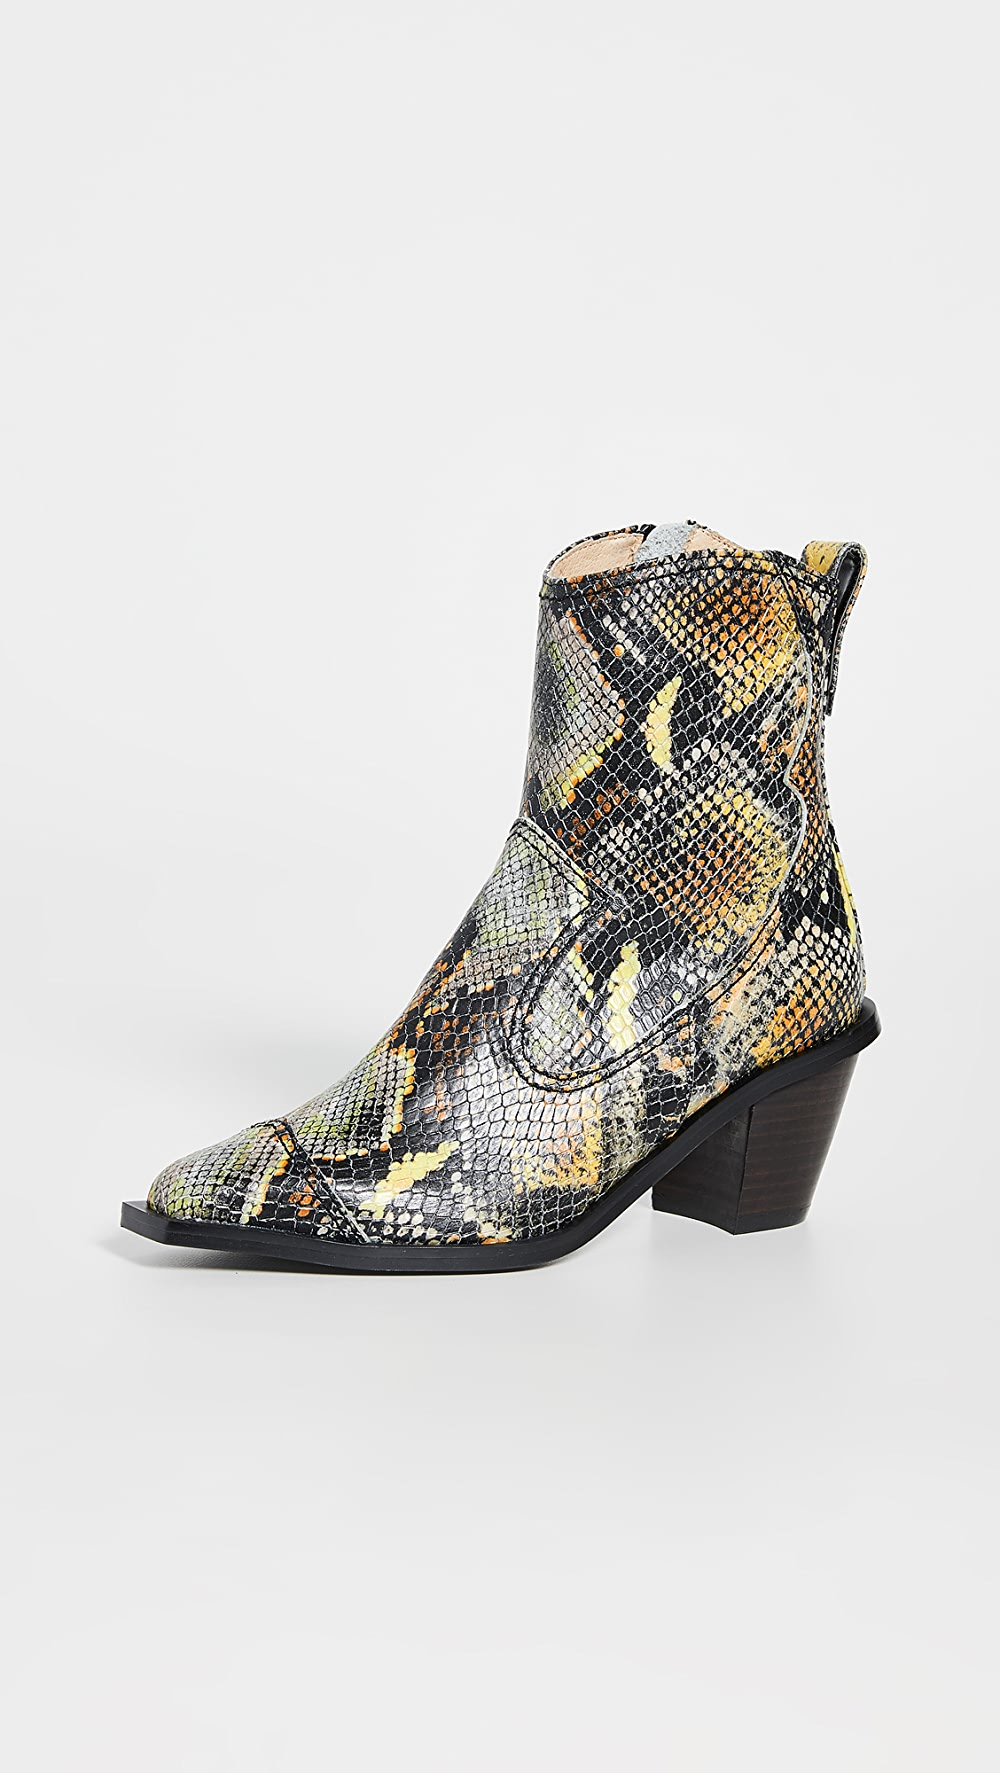 Ambitious Reike Nen - Western Wave Boots Commodities Are Available Without Restriction